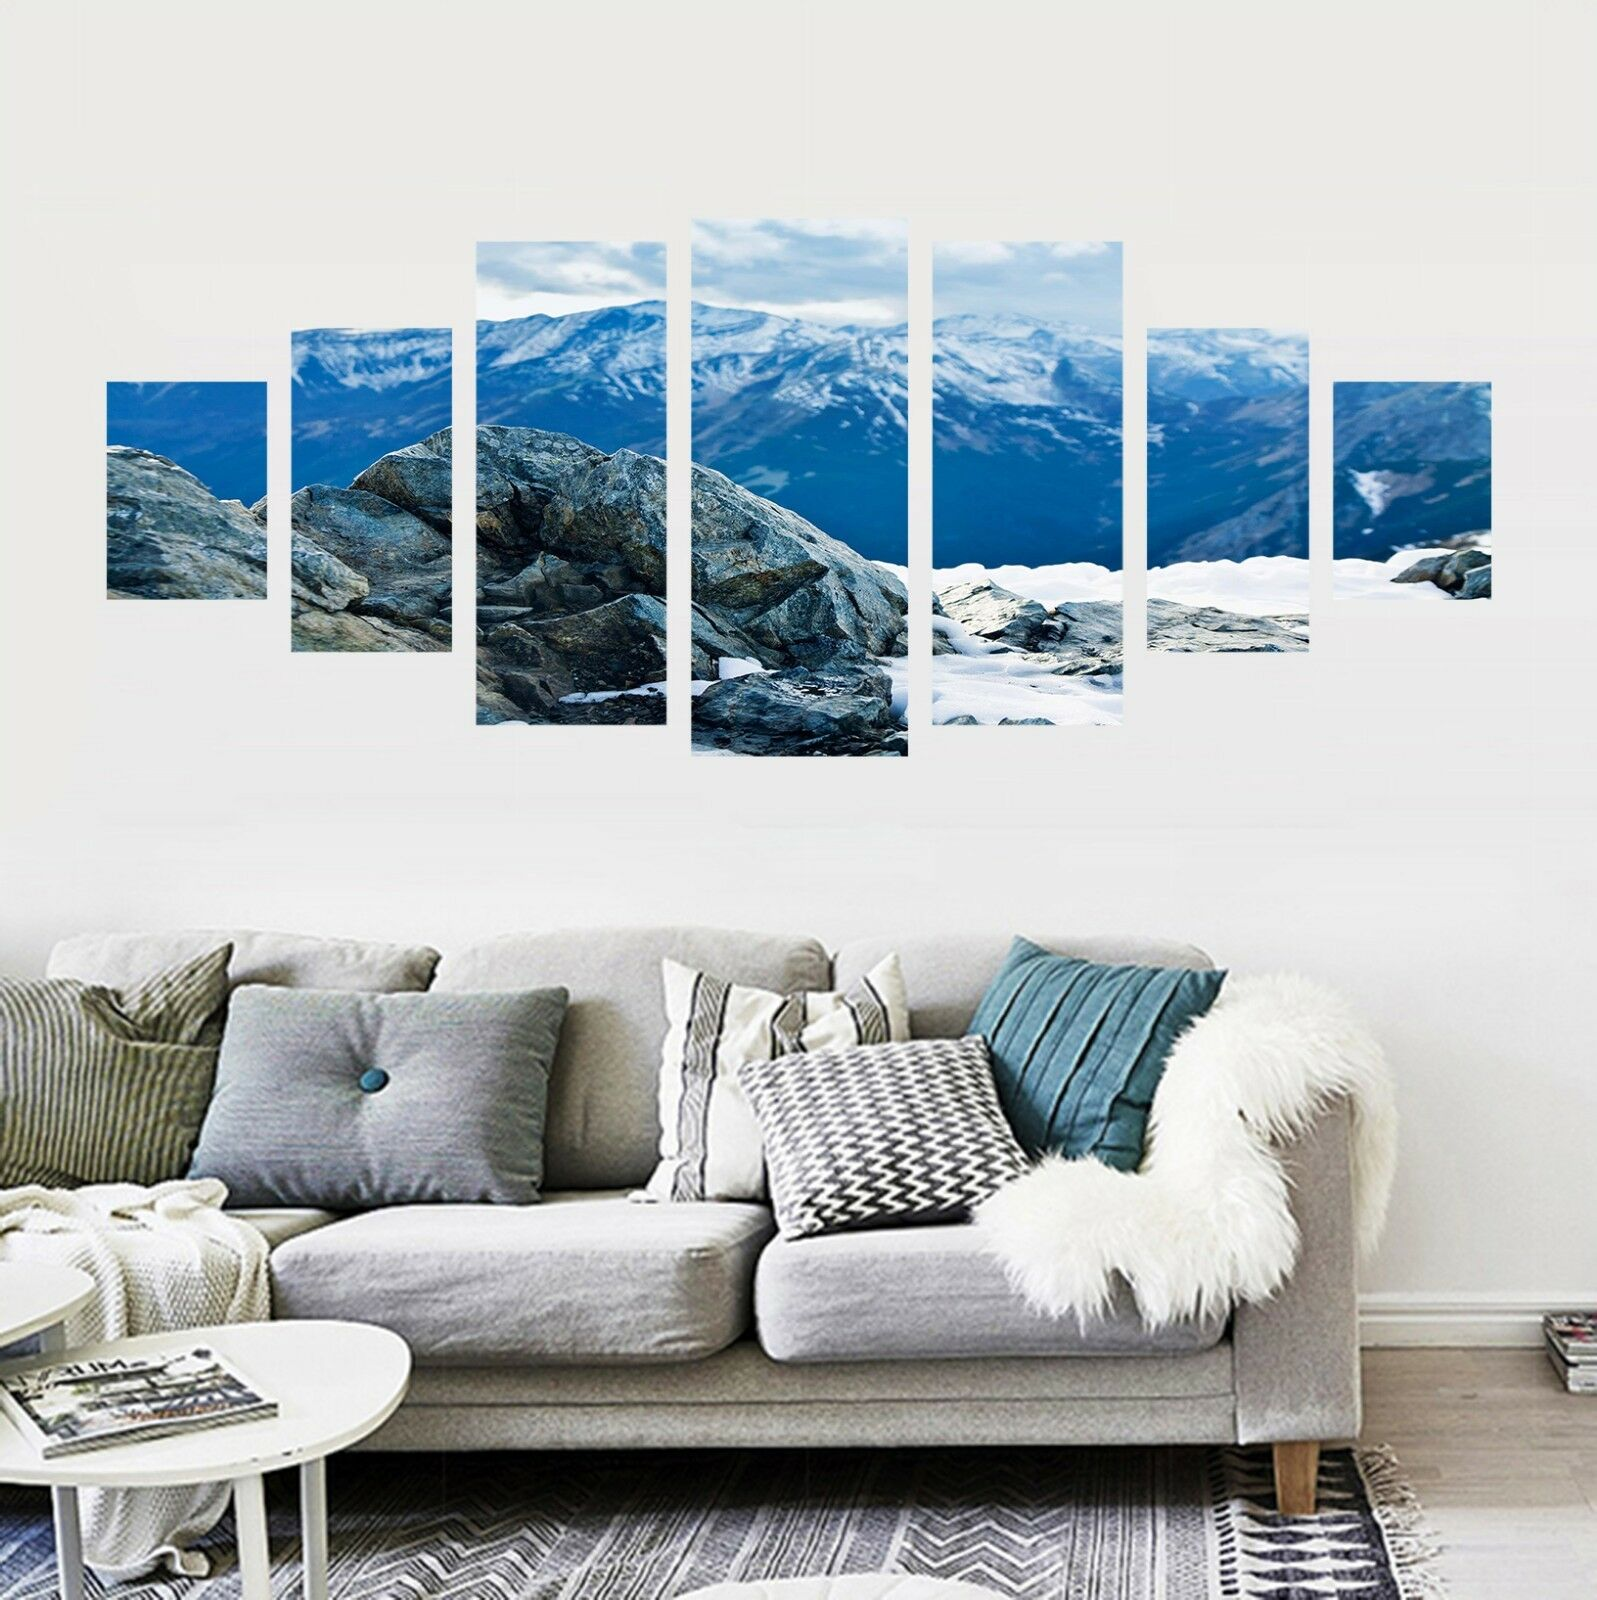 3D Mount View 74 Unframed Print Wall Paper Decal Wall Deco Indoor AJ Jenny